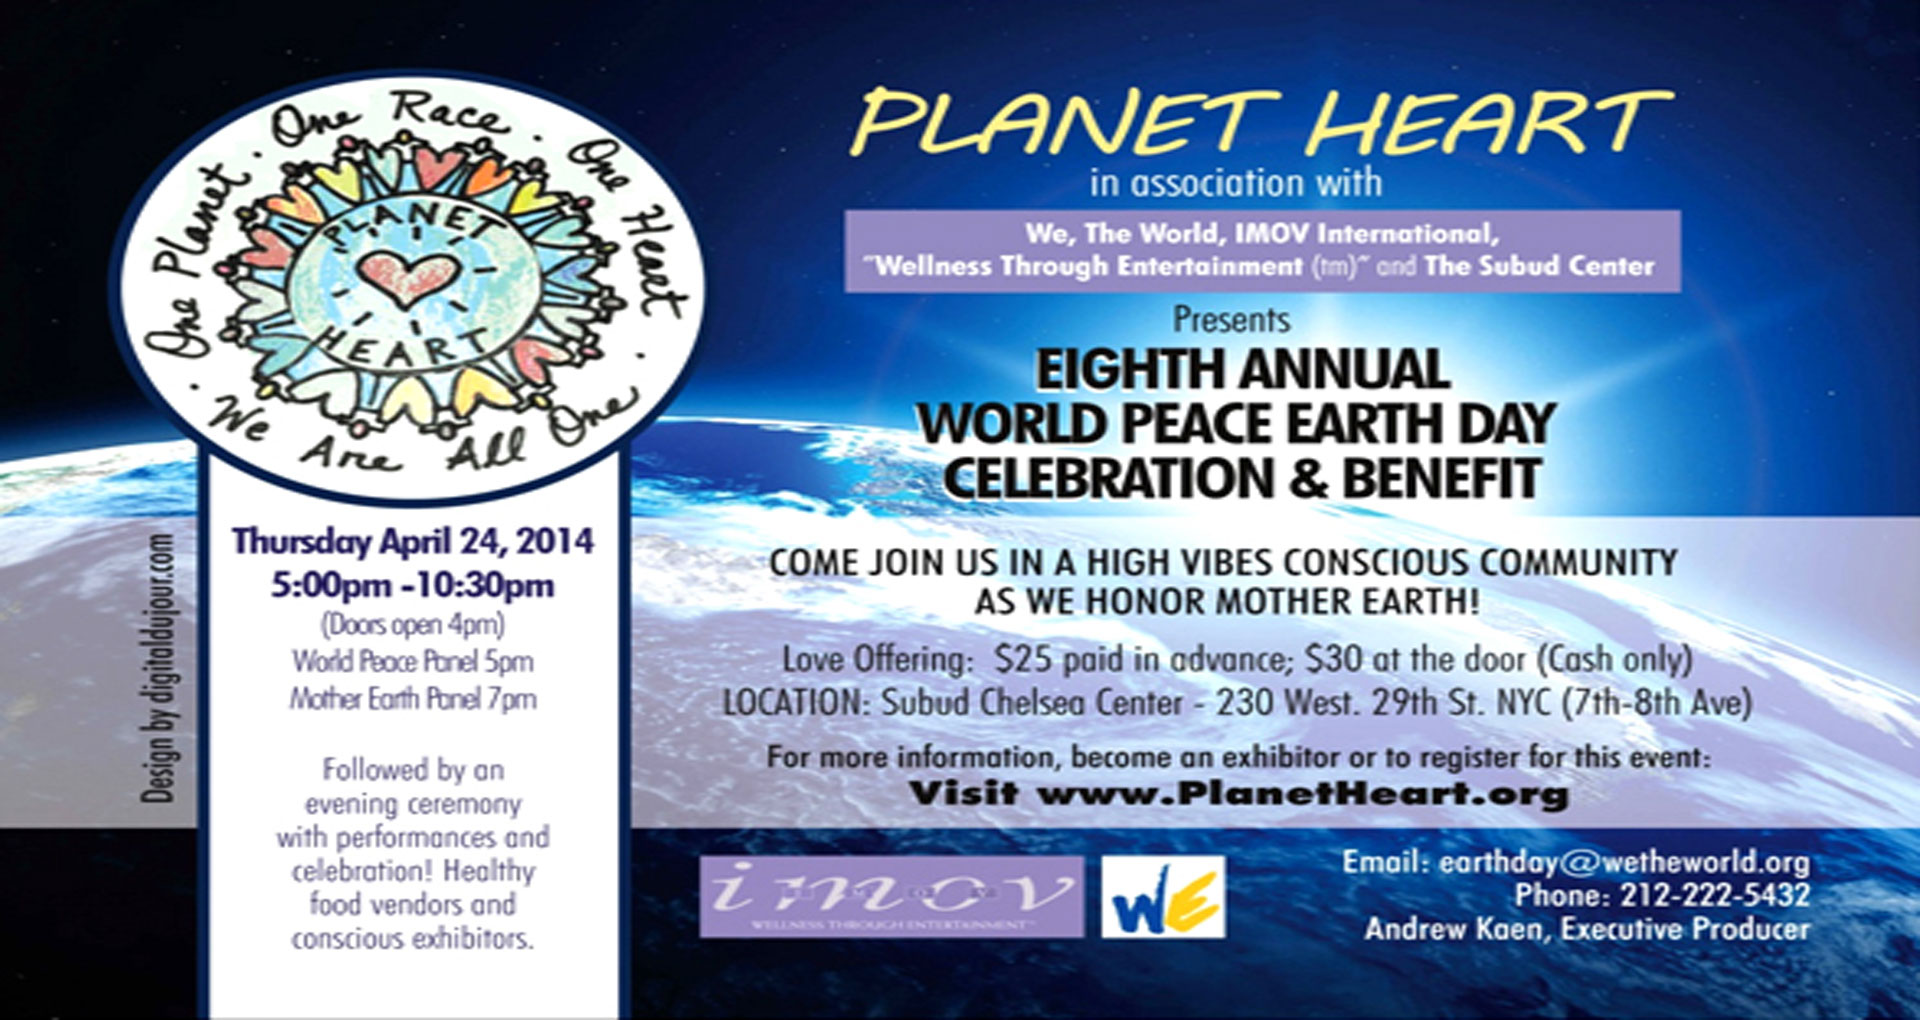 8th Annual Planet Heart Celebration in NYC - April 24th, 2014- Gary Null to be Guest Speaker